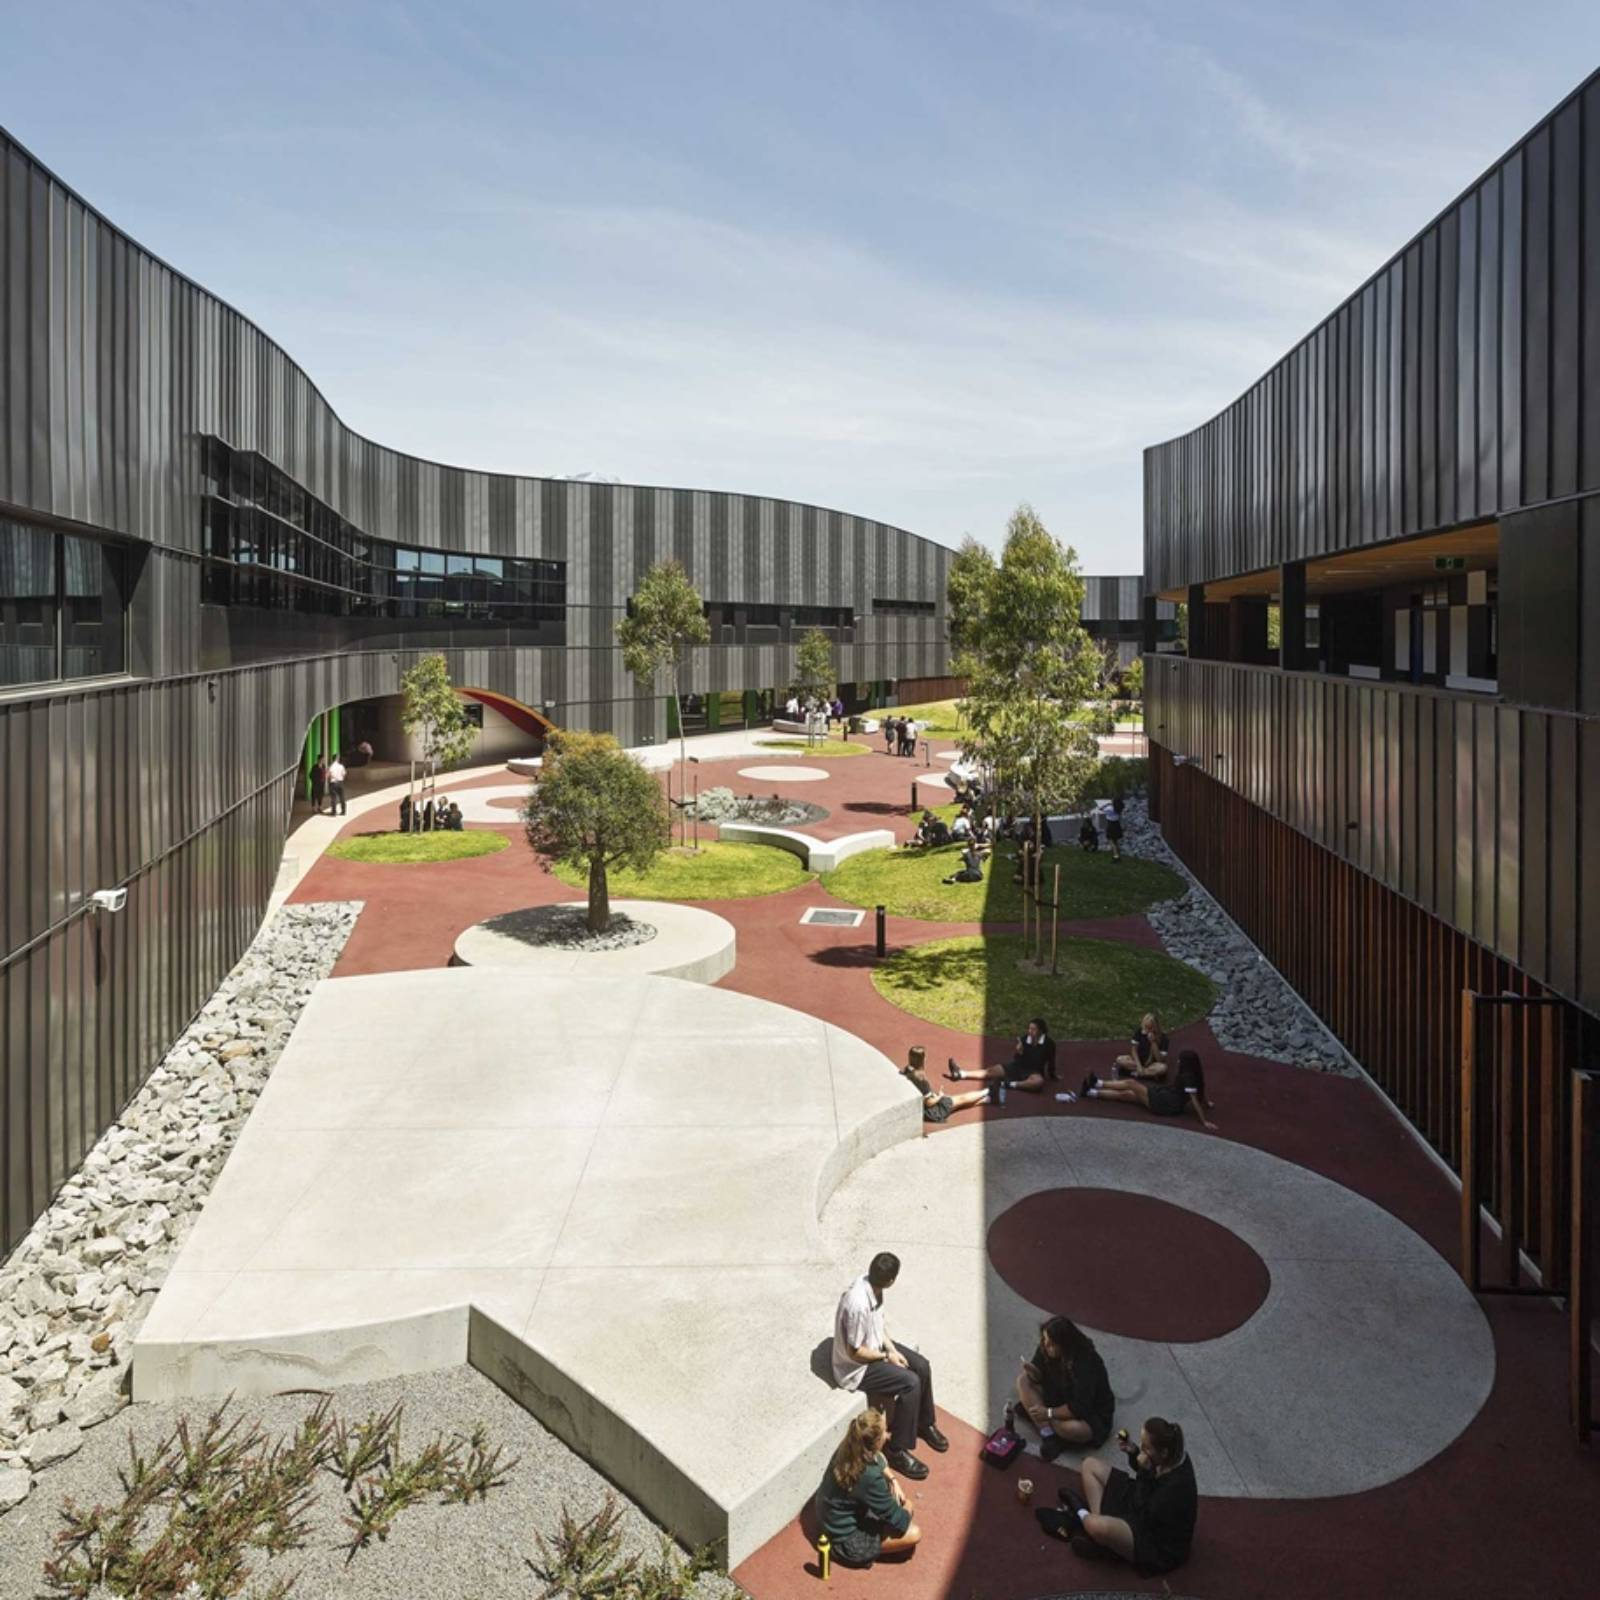 PEGS INFINITY CENTRE BY MCBRIDE CHARLES RYAN ARCHITECTS